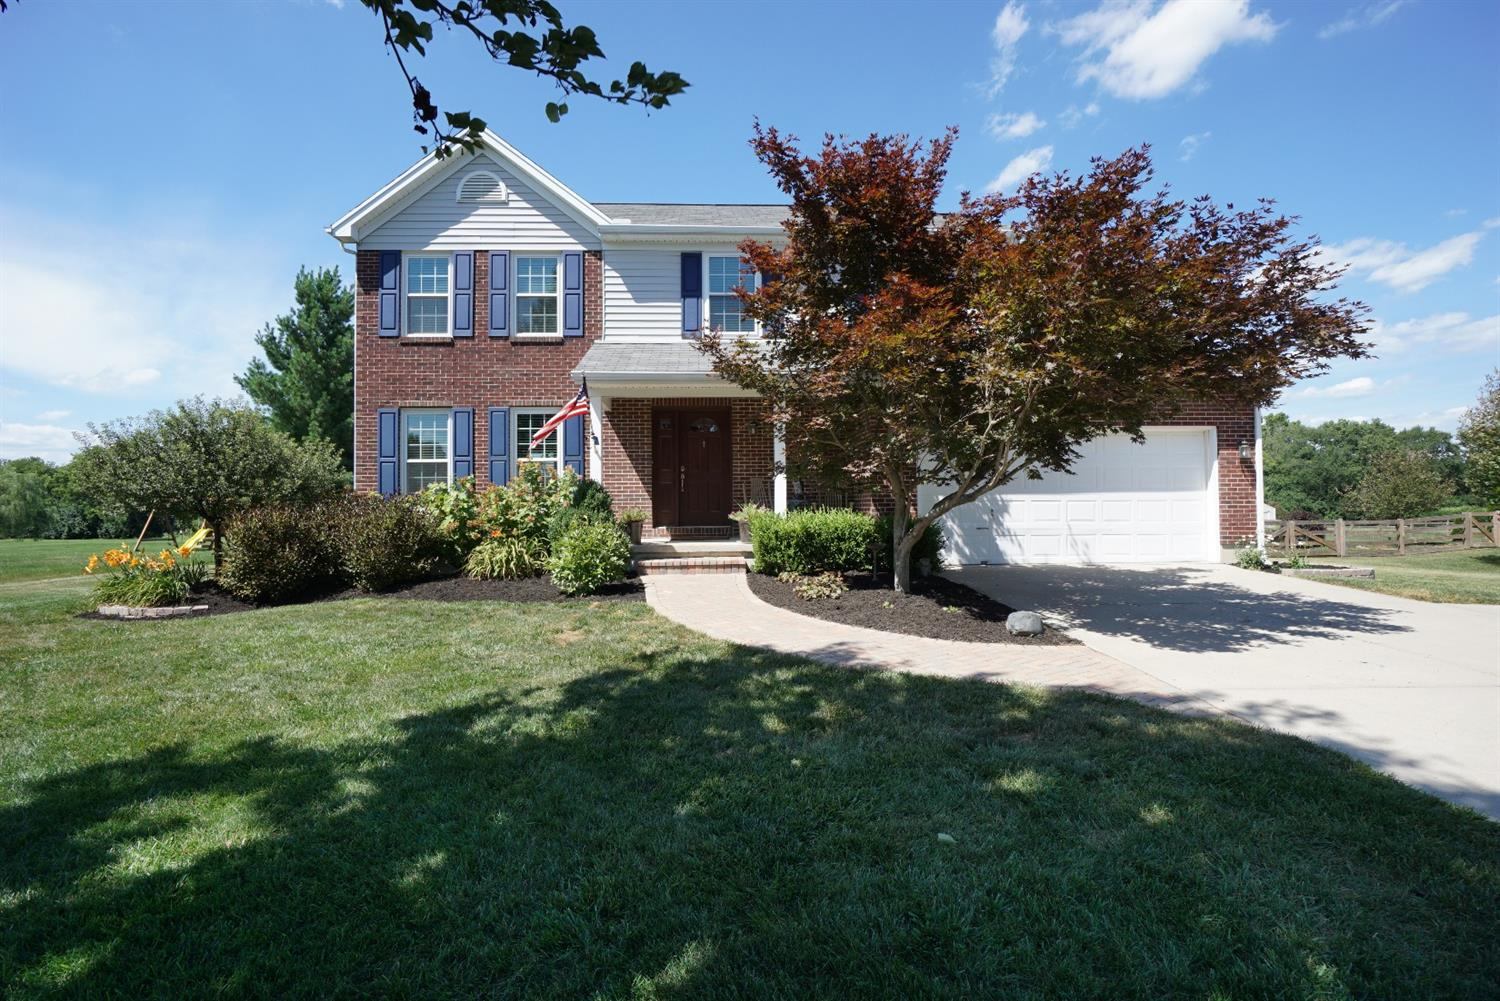 392 Magnolia Dr Clear Creek Twp., OH